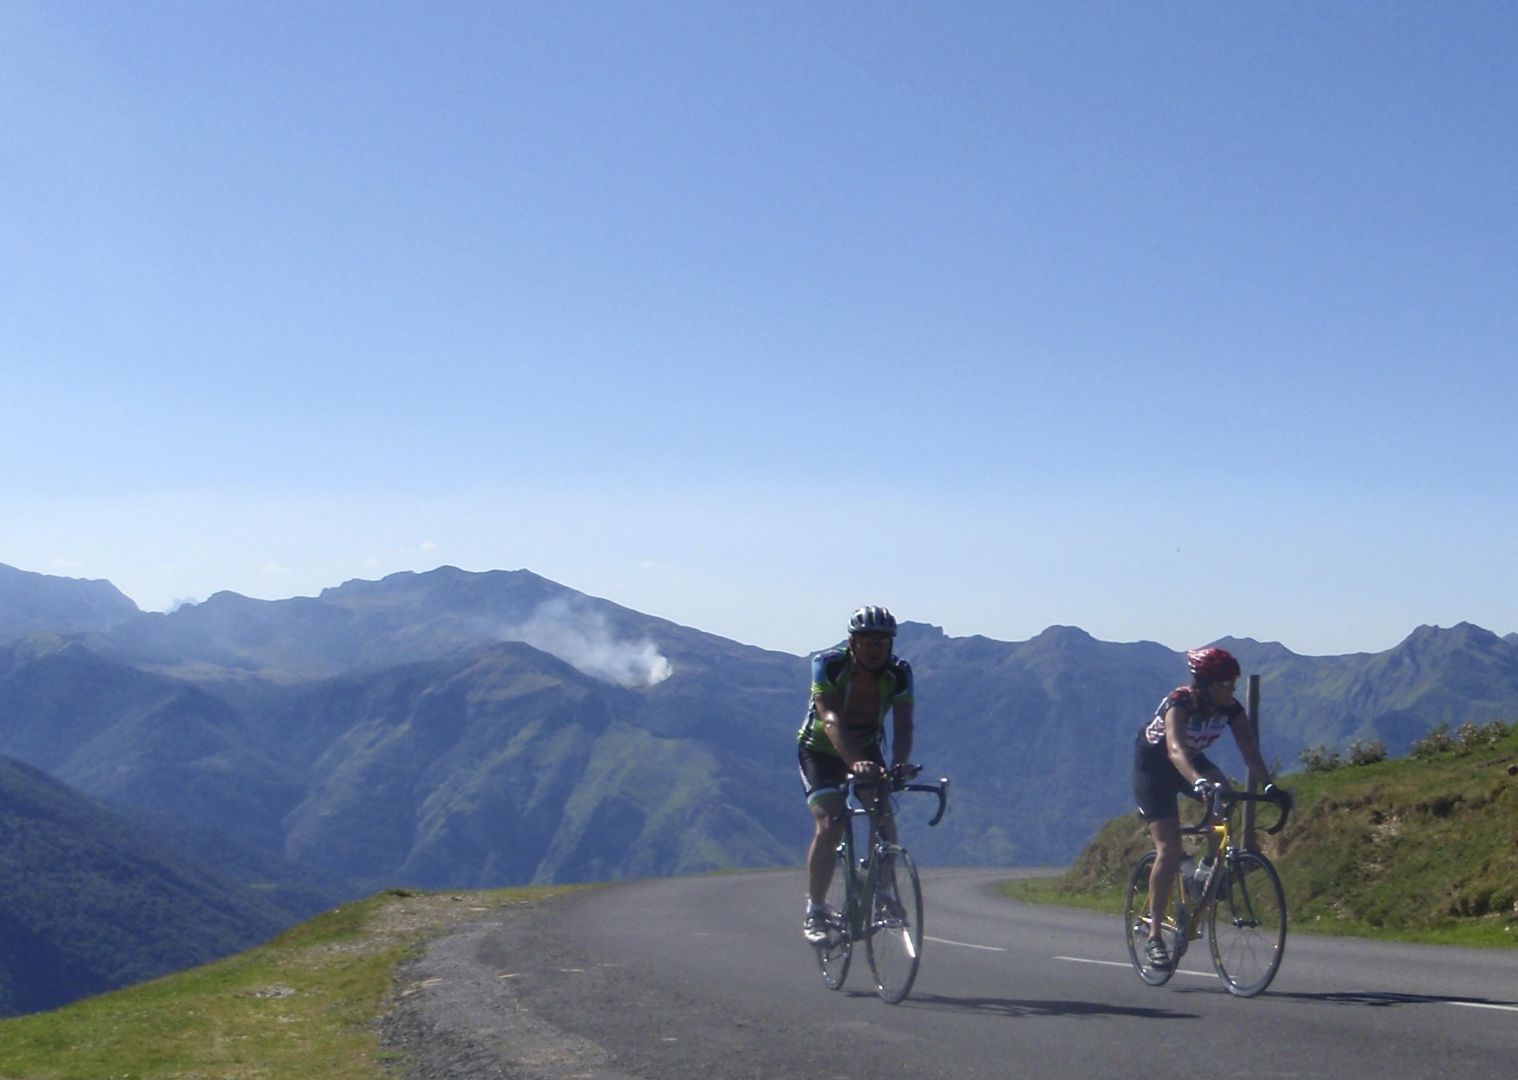 Pyrenees Classic Road Cycling 47.jpg - France - Trans Pyrenees Challenge - Guided Road Cycling Holiday - Road Cycling